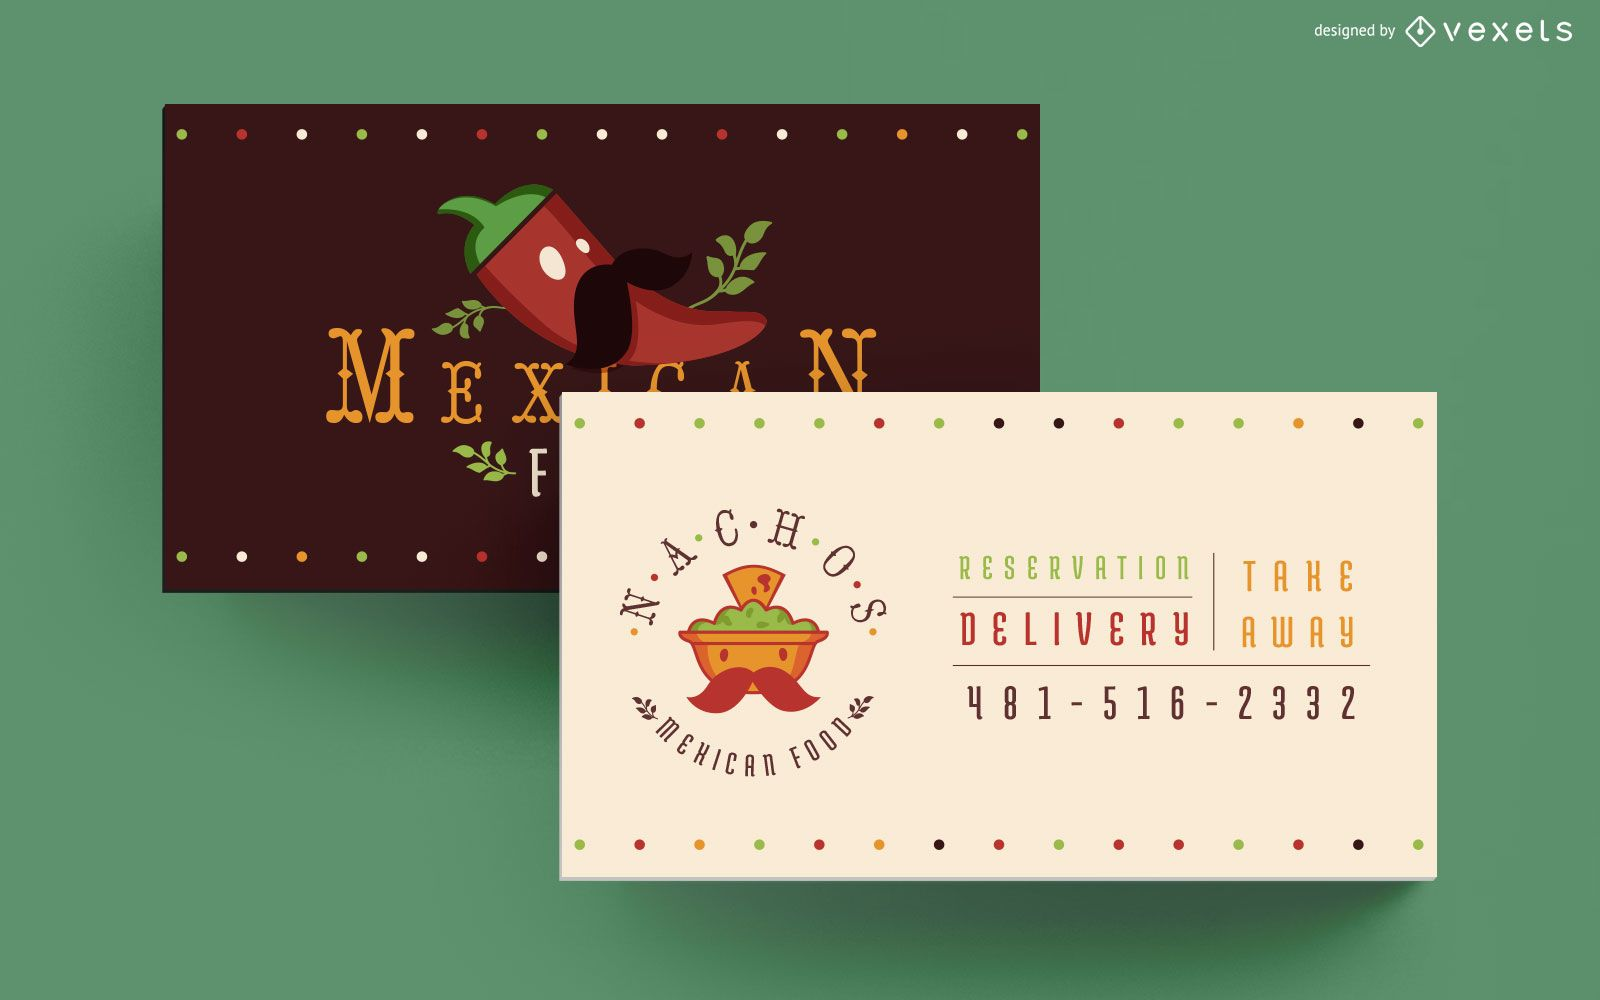 Mexican food business card